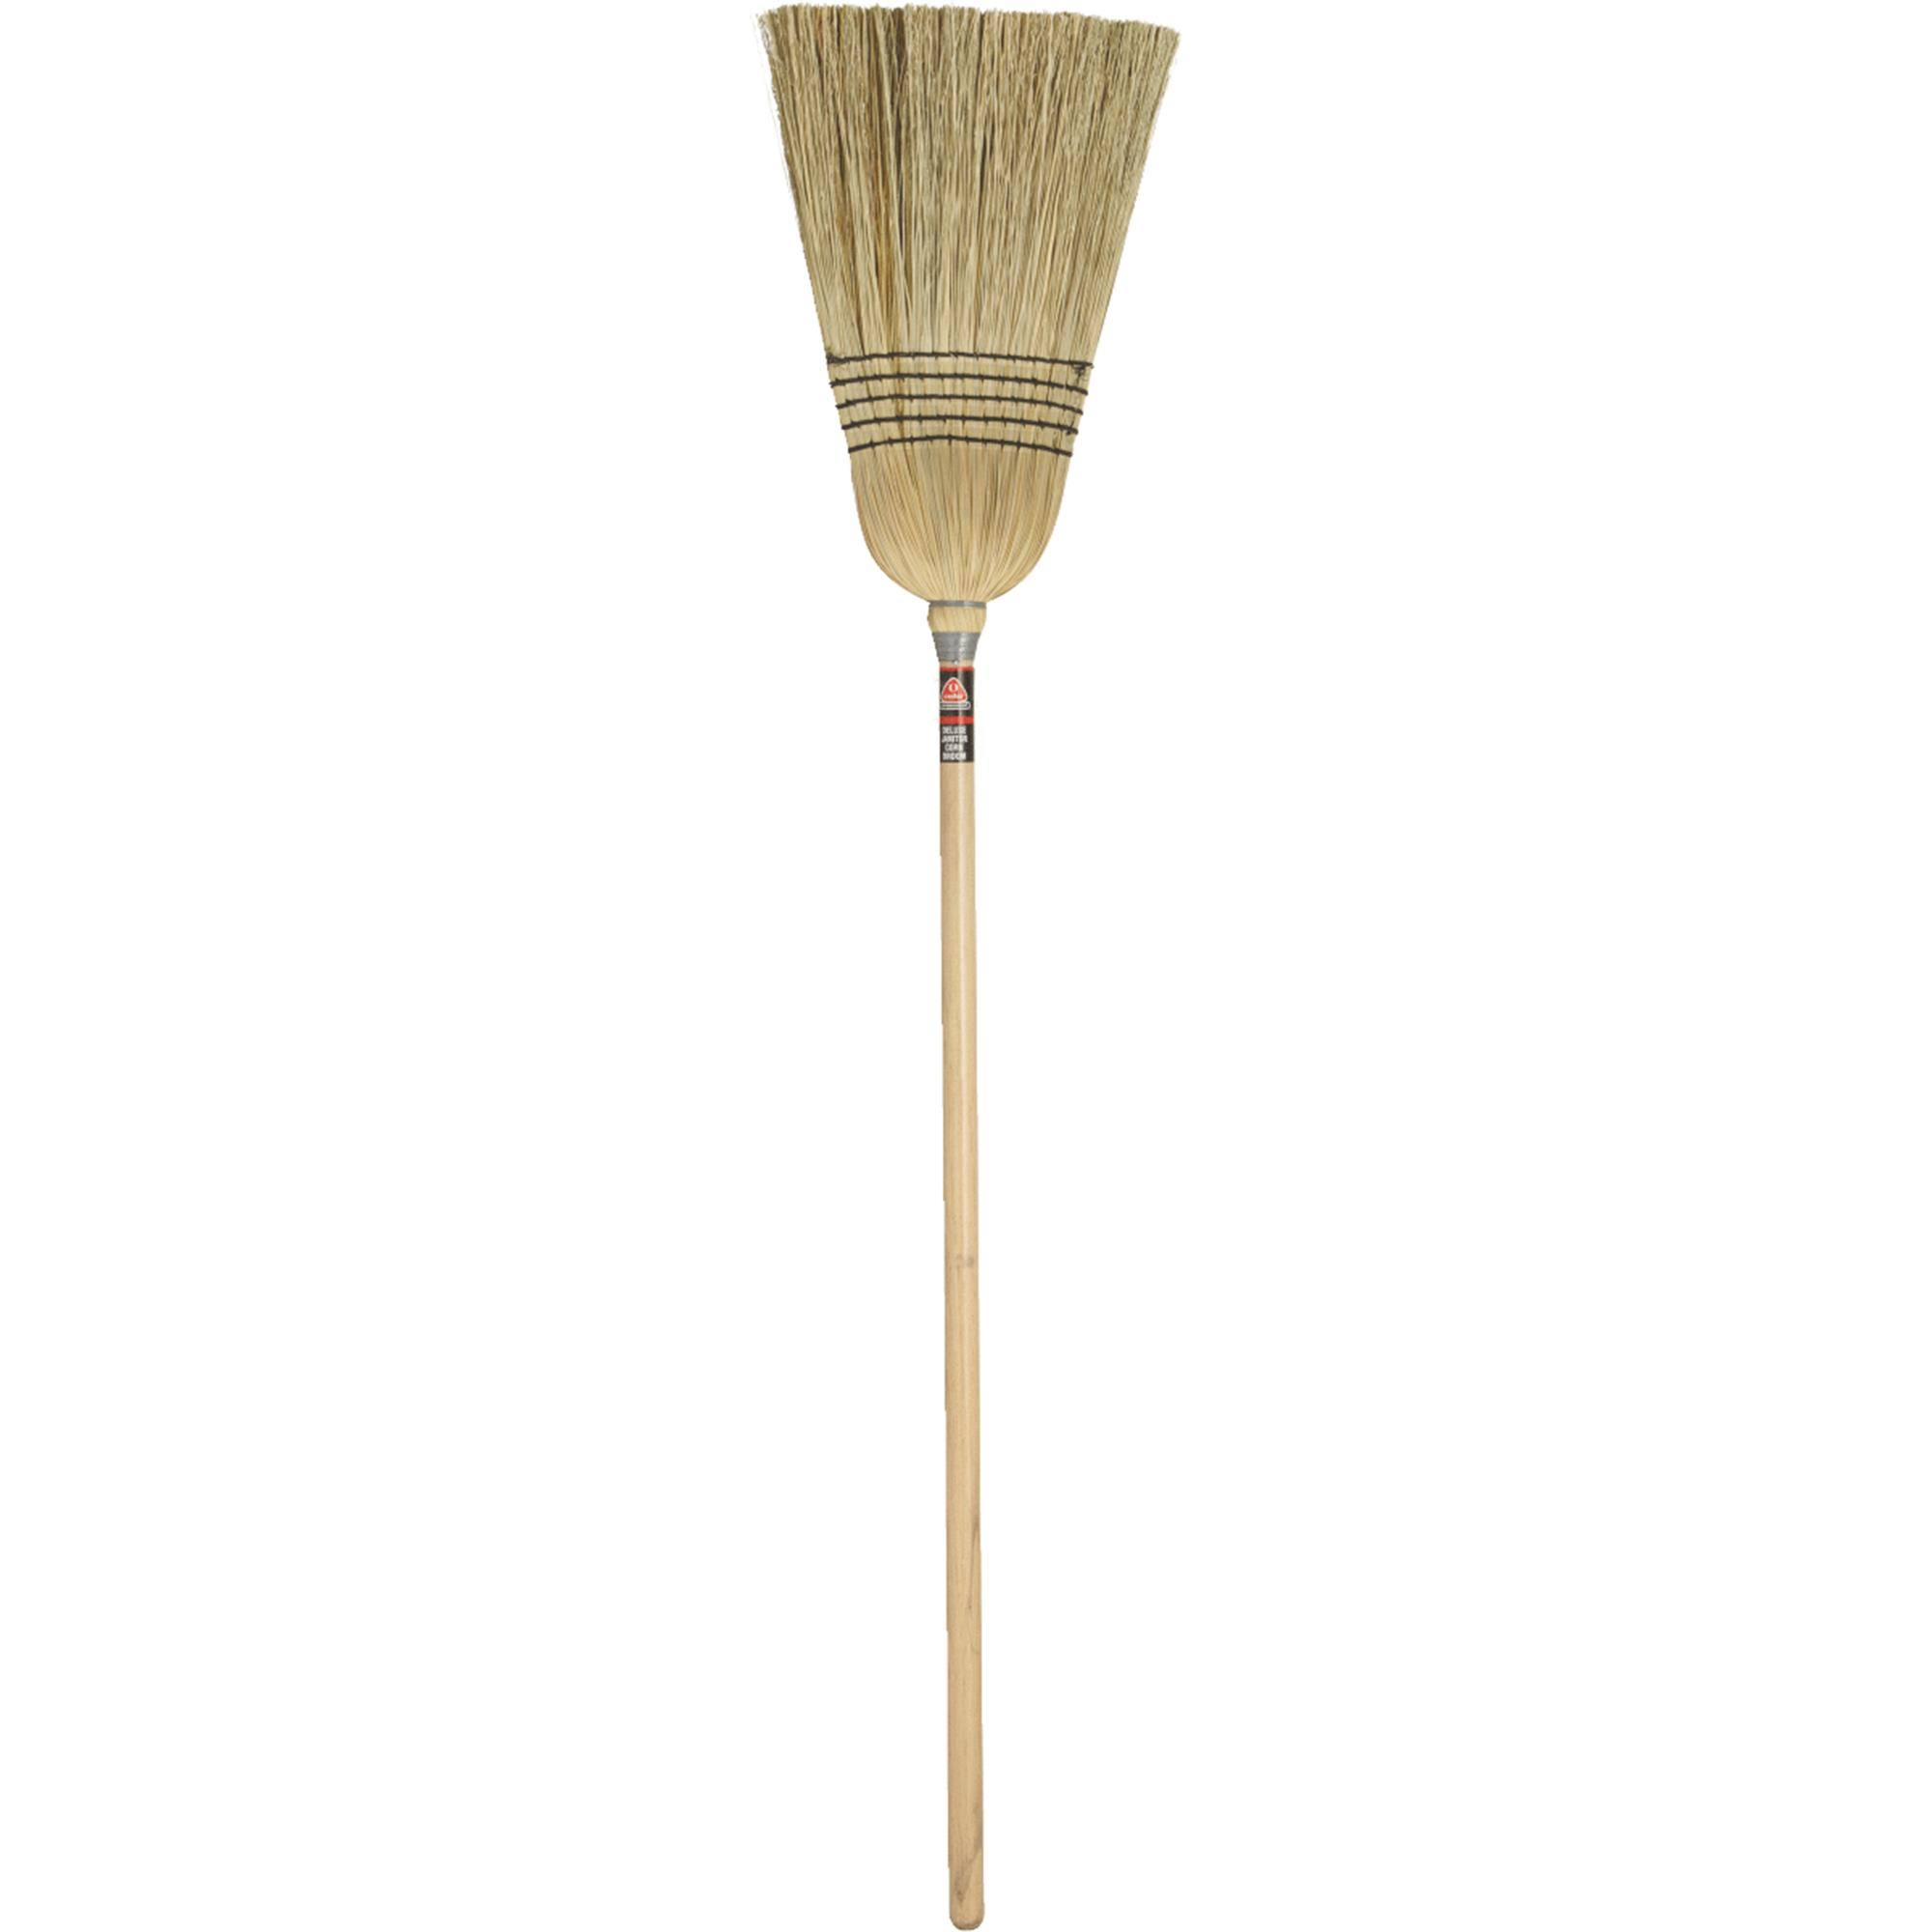 O Cedar Commercials Corn Janitor Broom